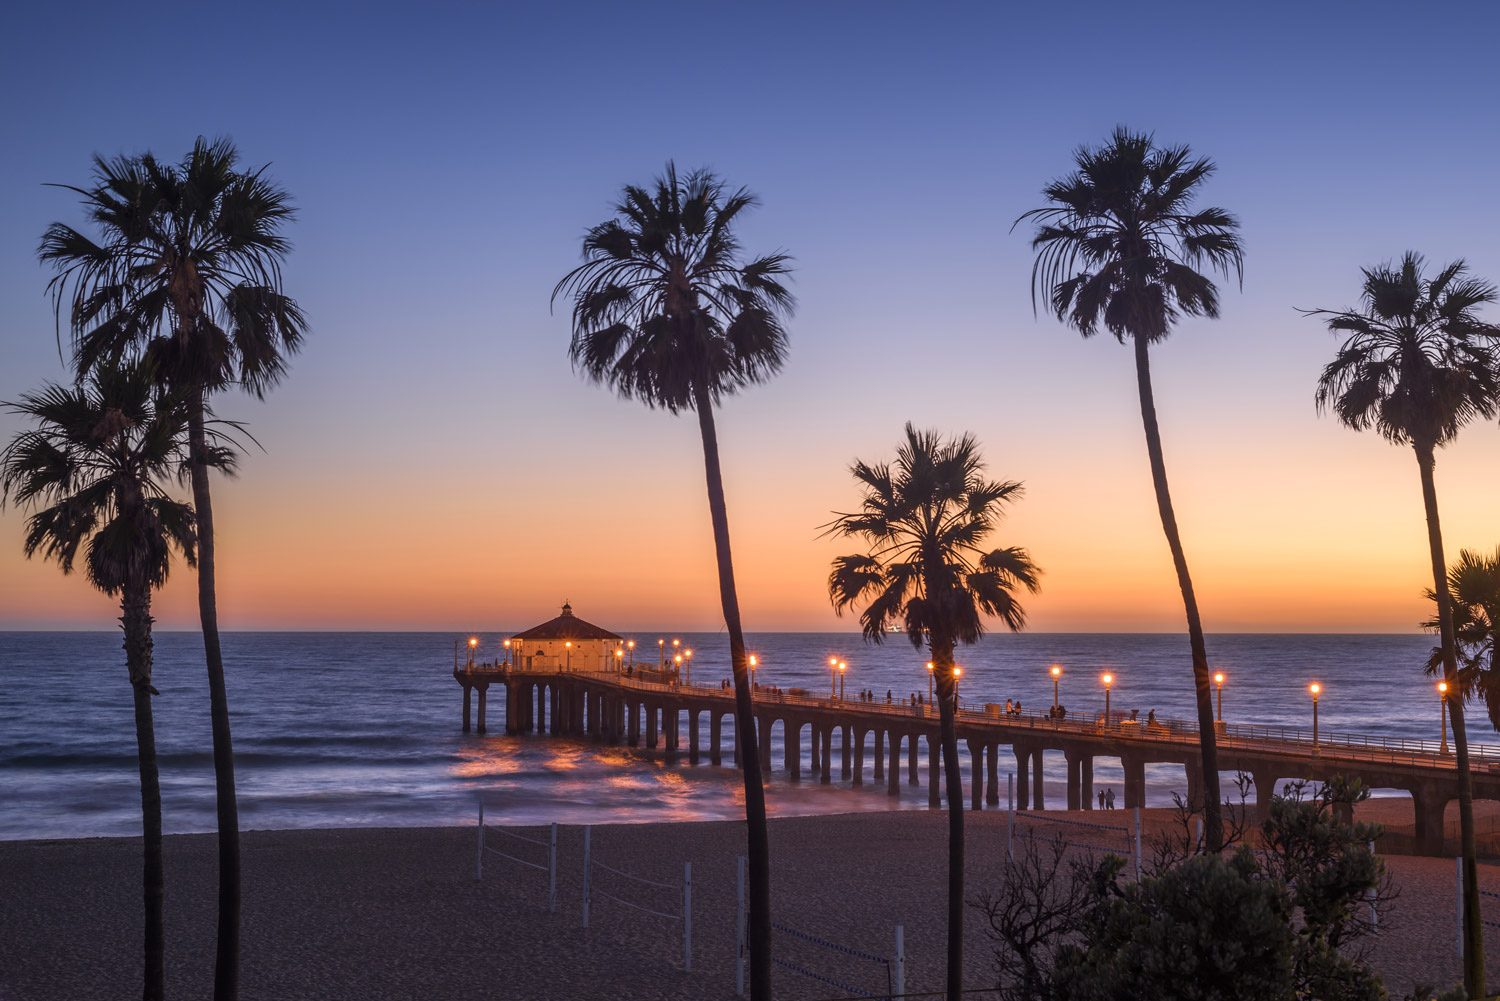 Day Trip to Manhattan Beach from your Newport Beach resort